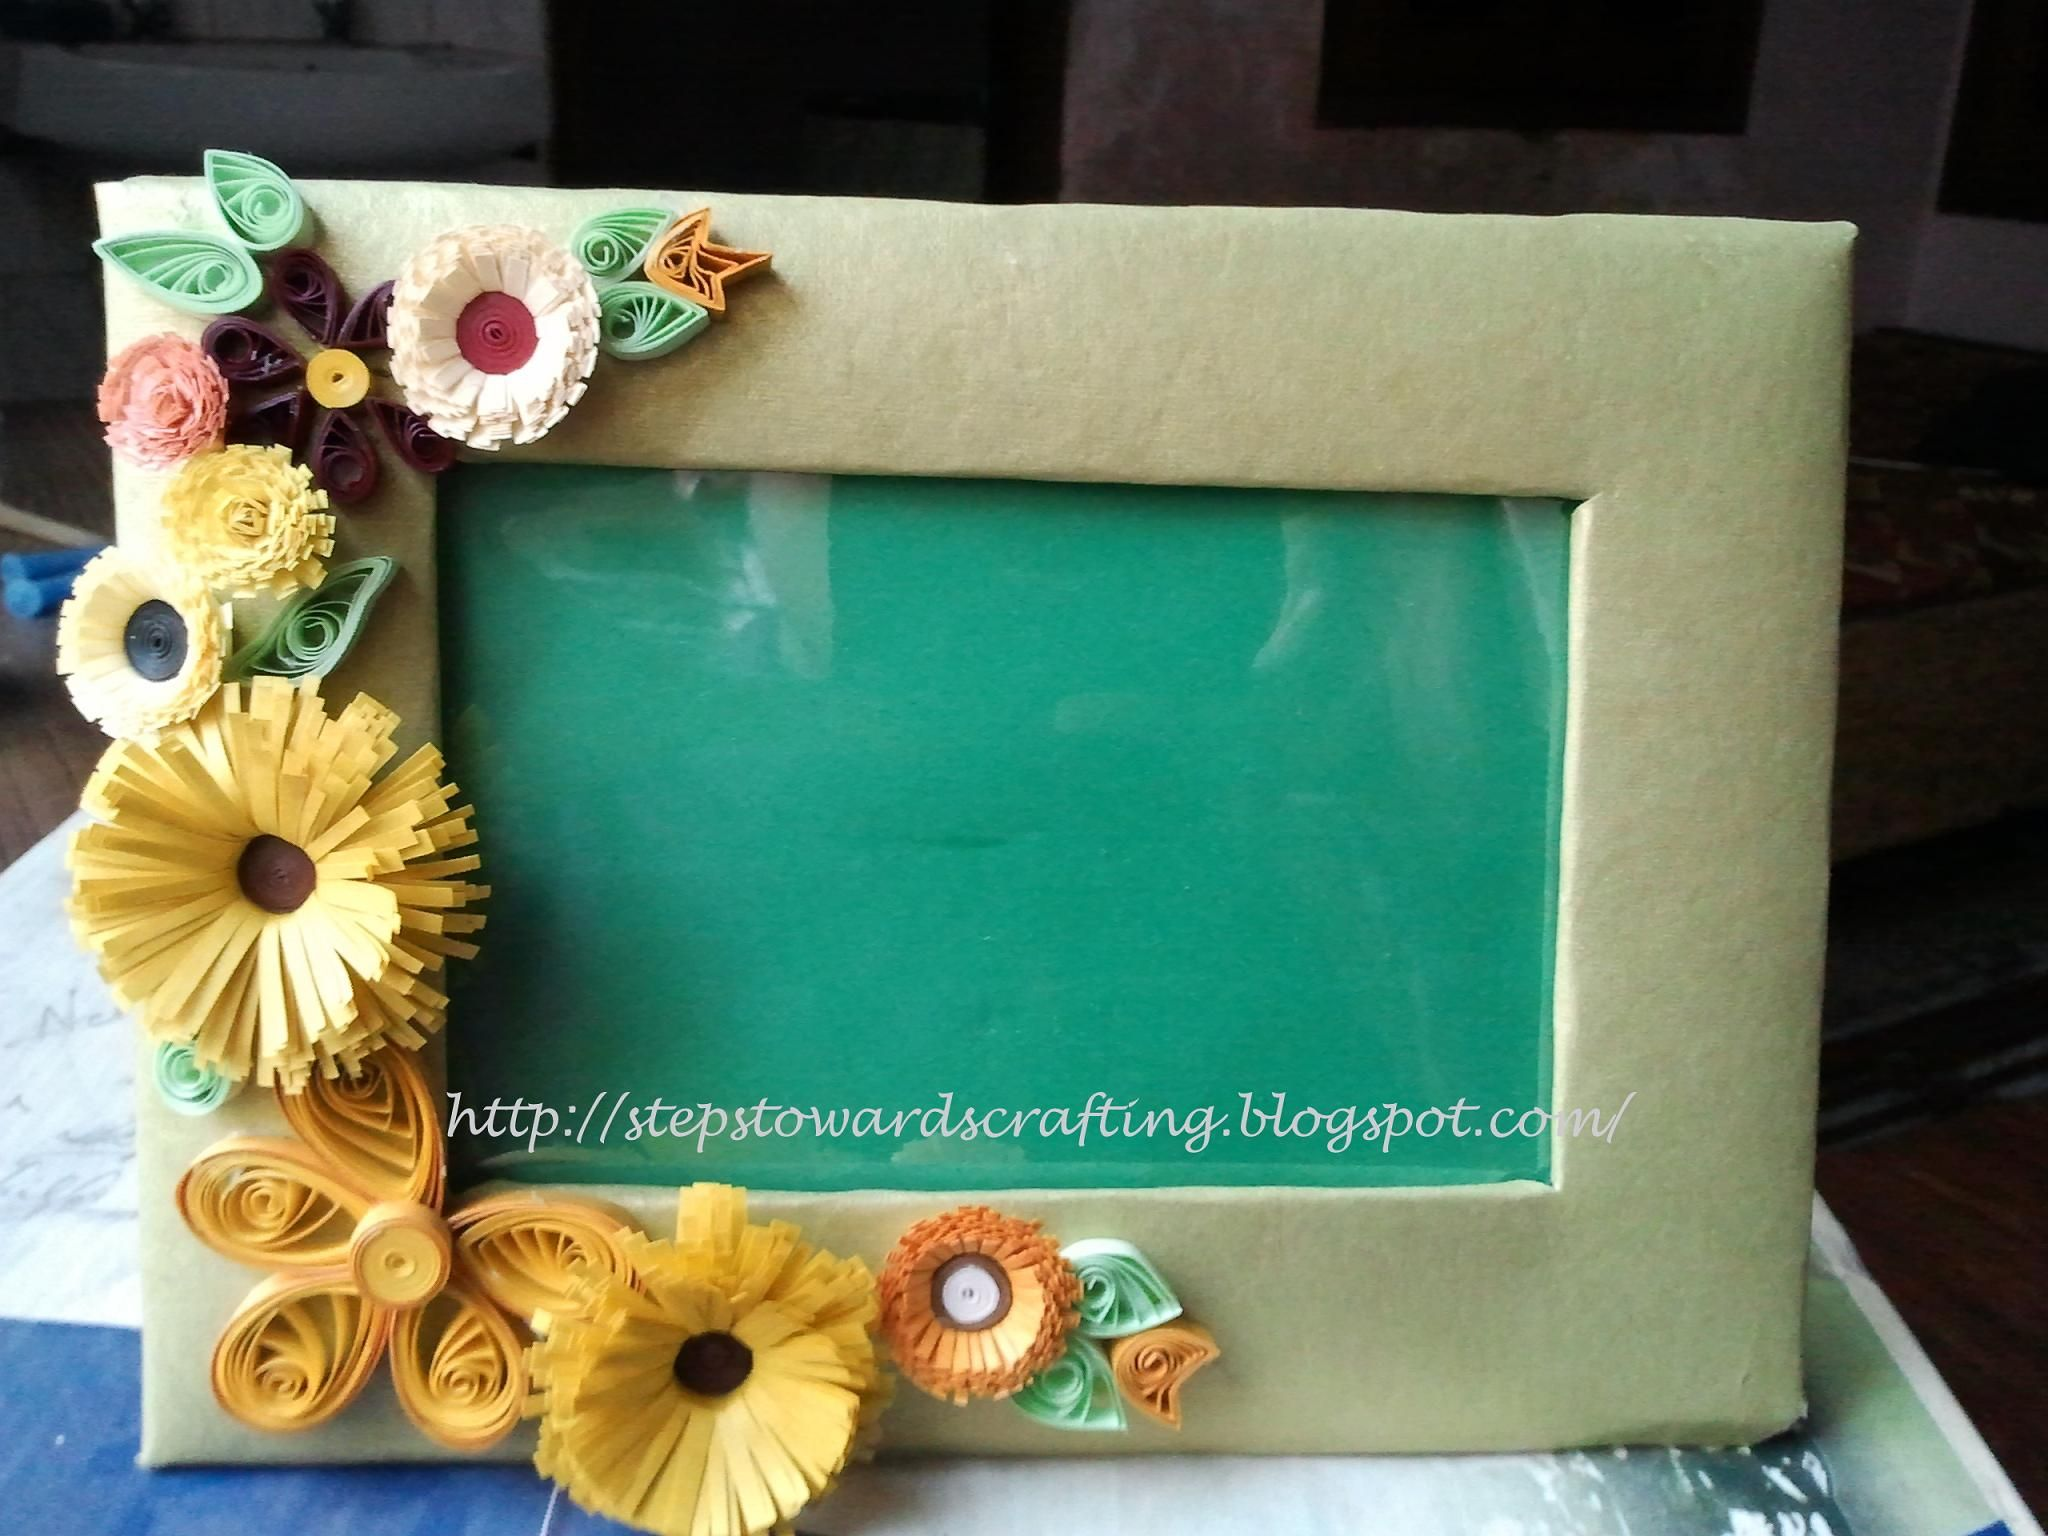 Cardboard Quilled photo frame 6 by 4